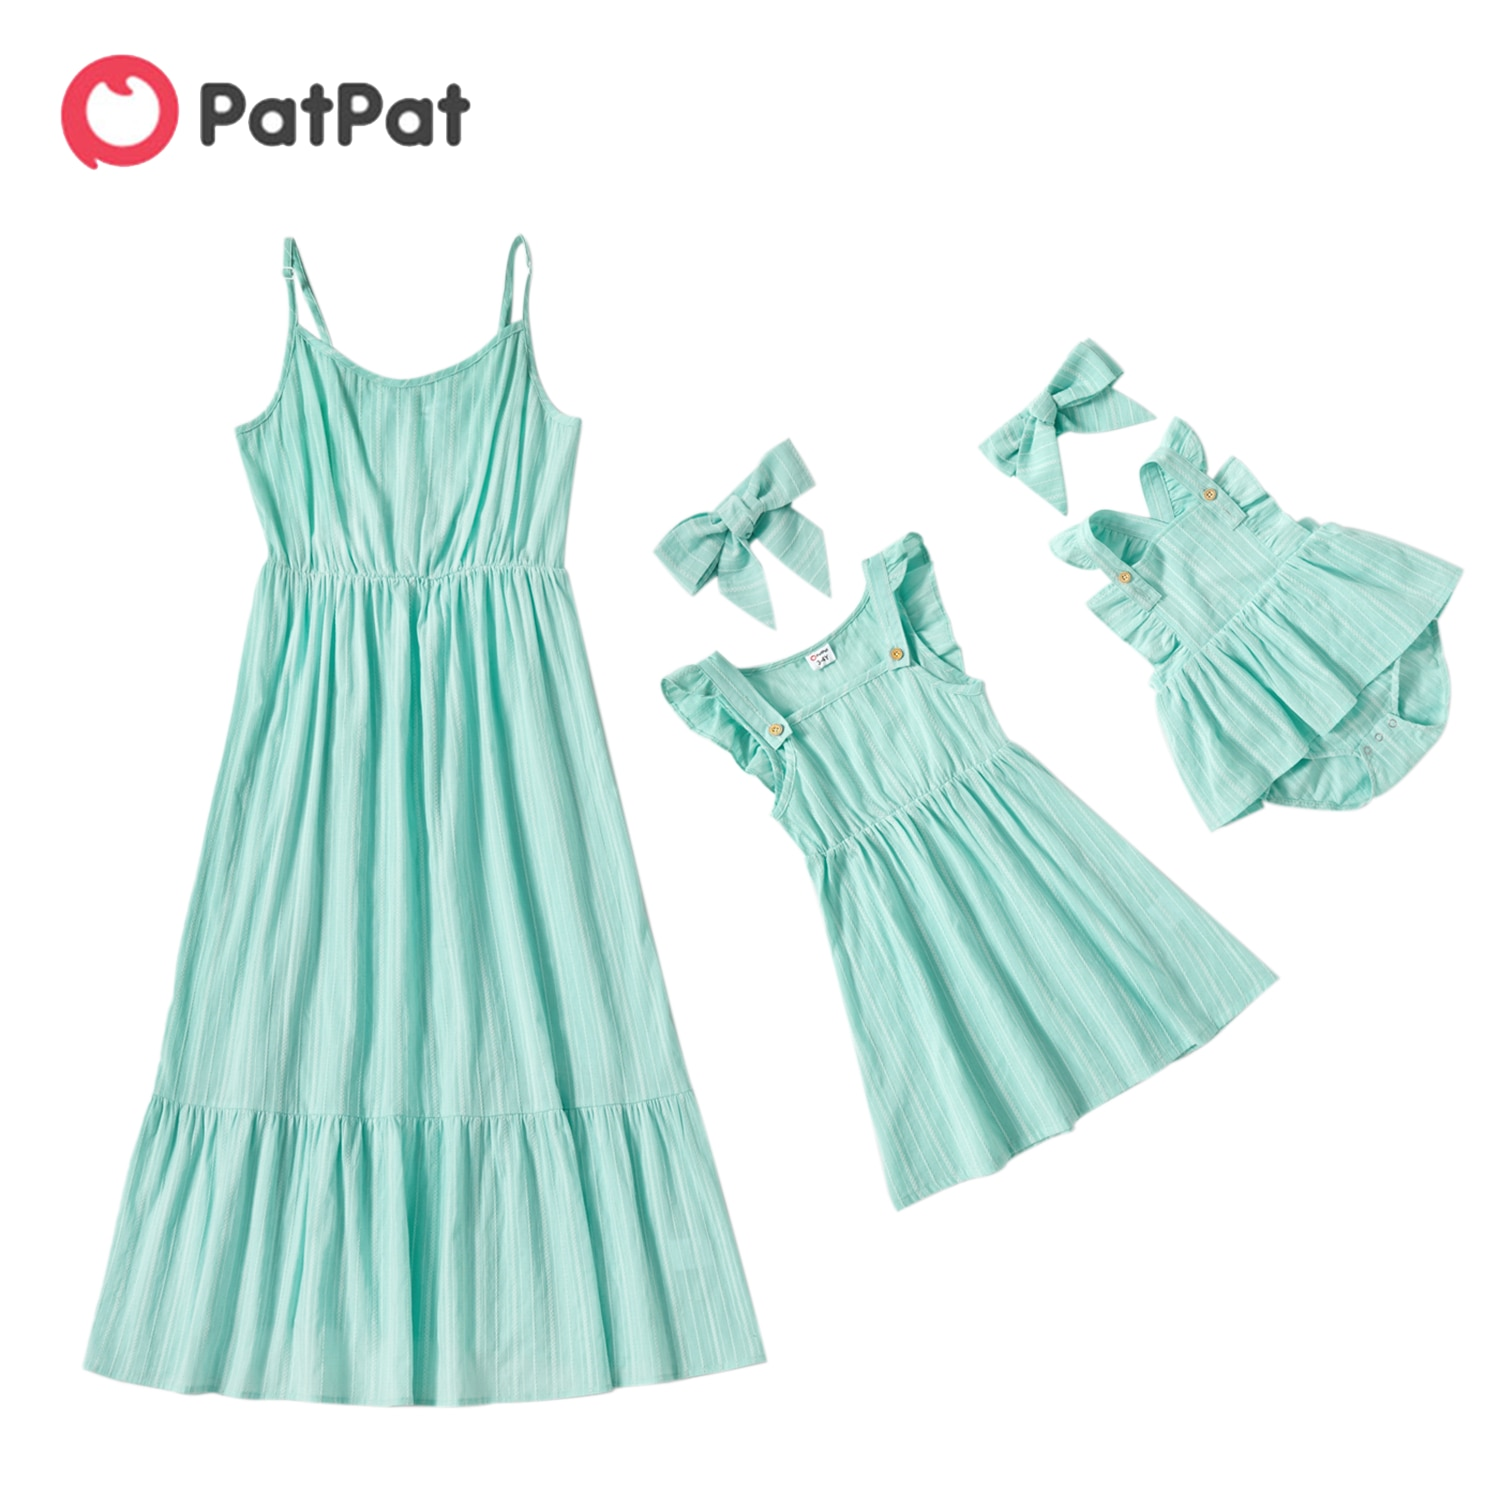 Fitted Mint Green Dress